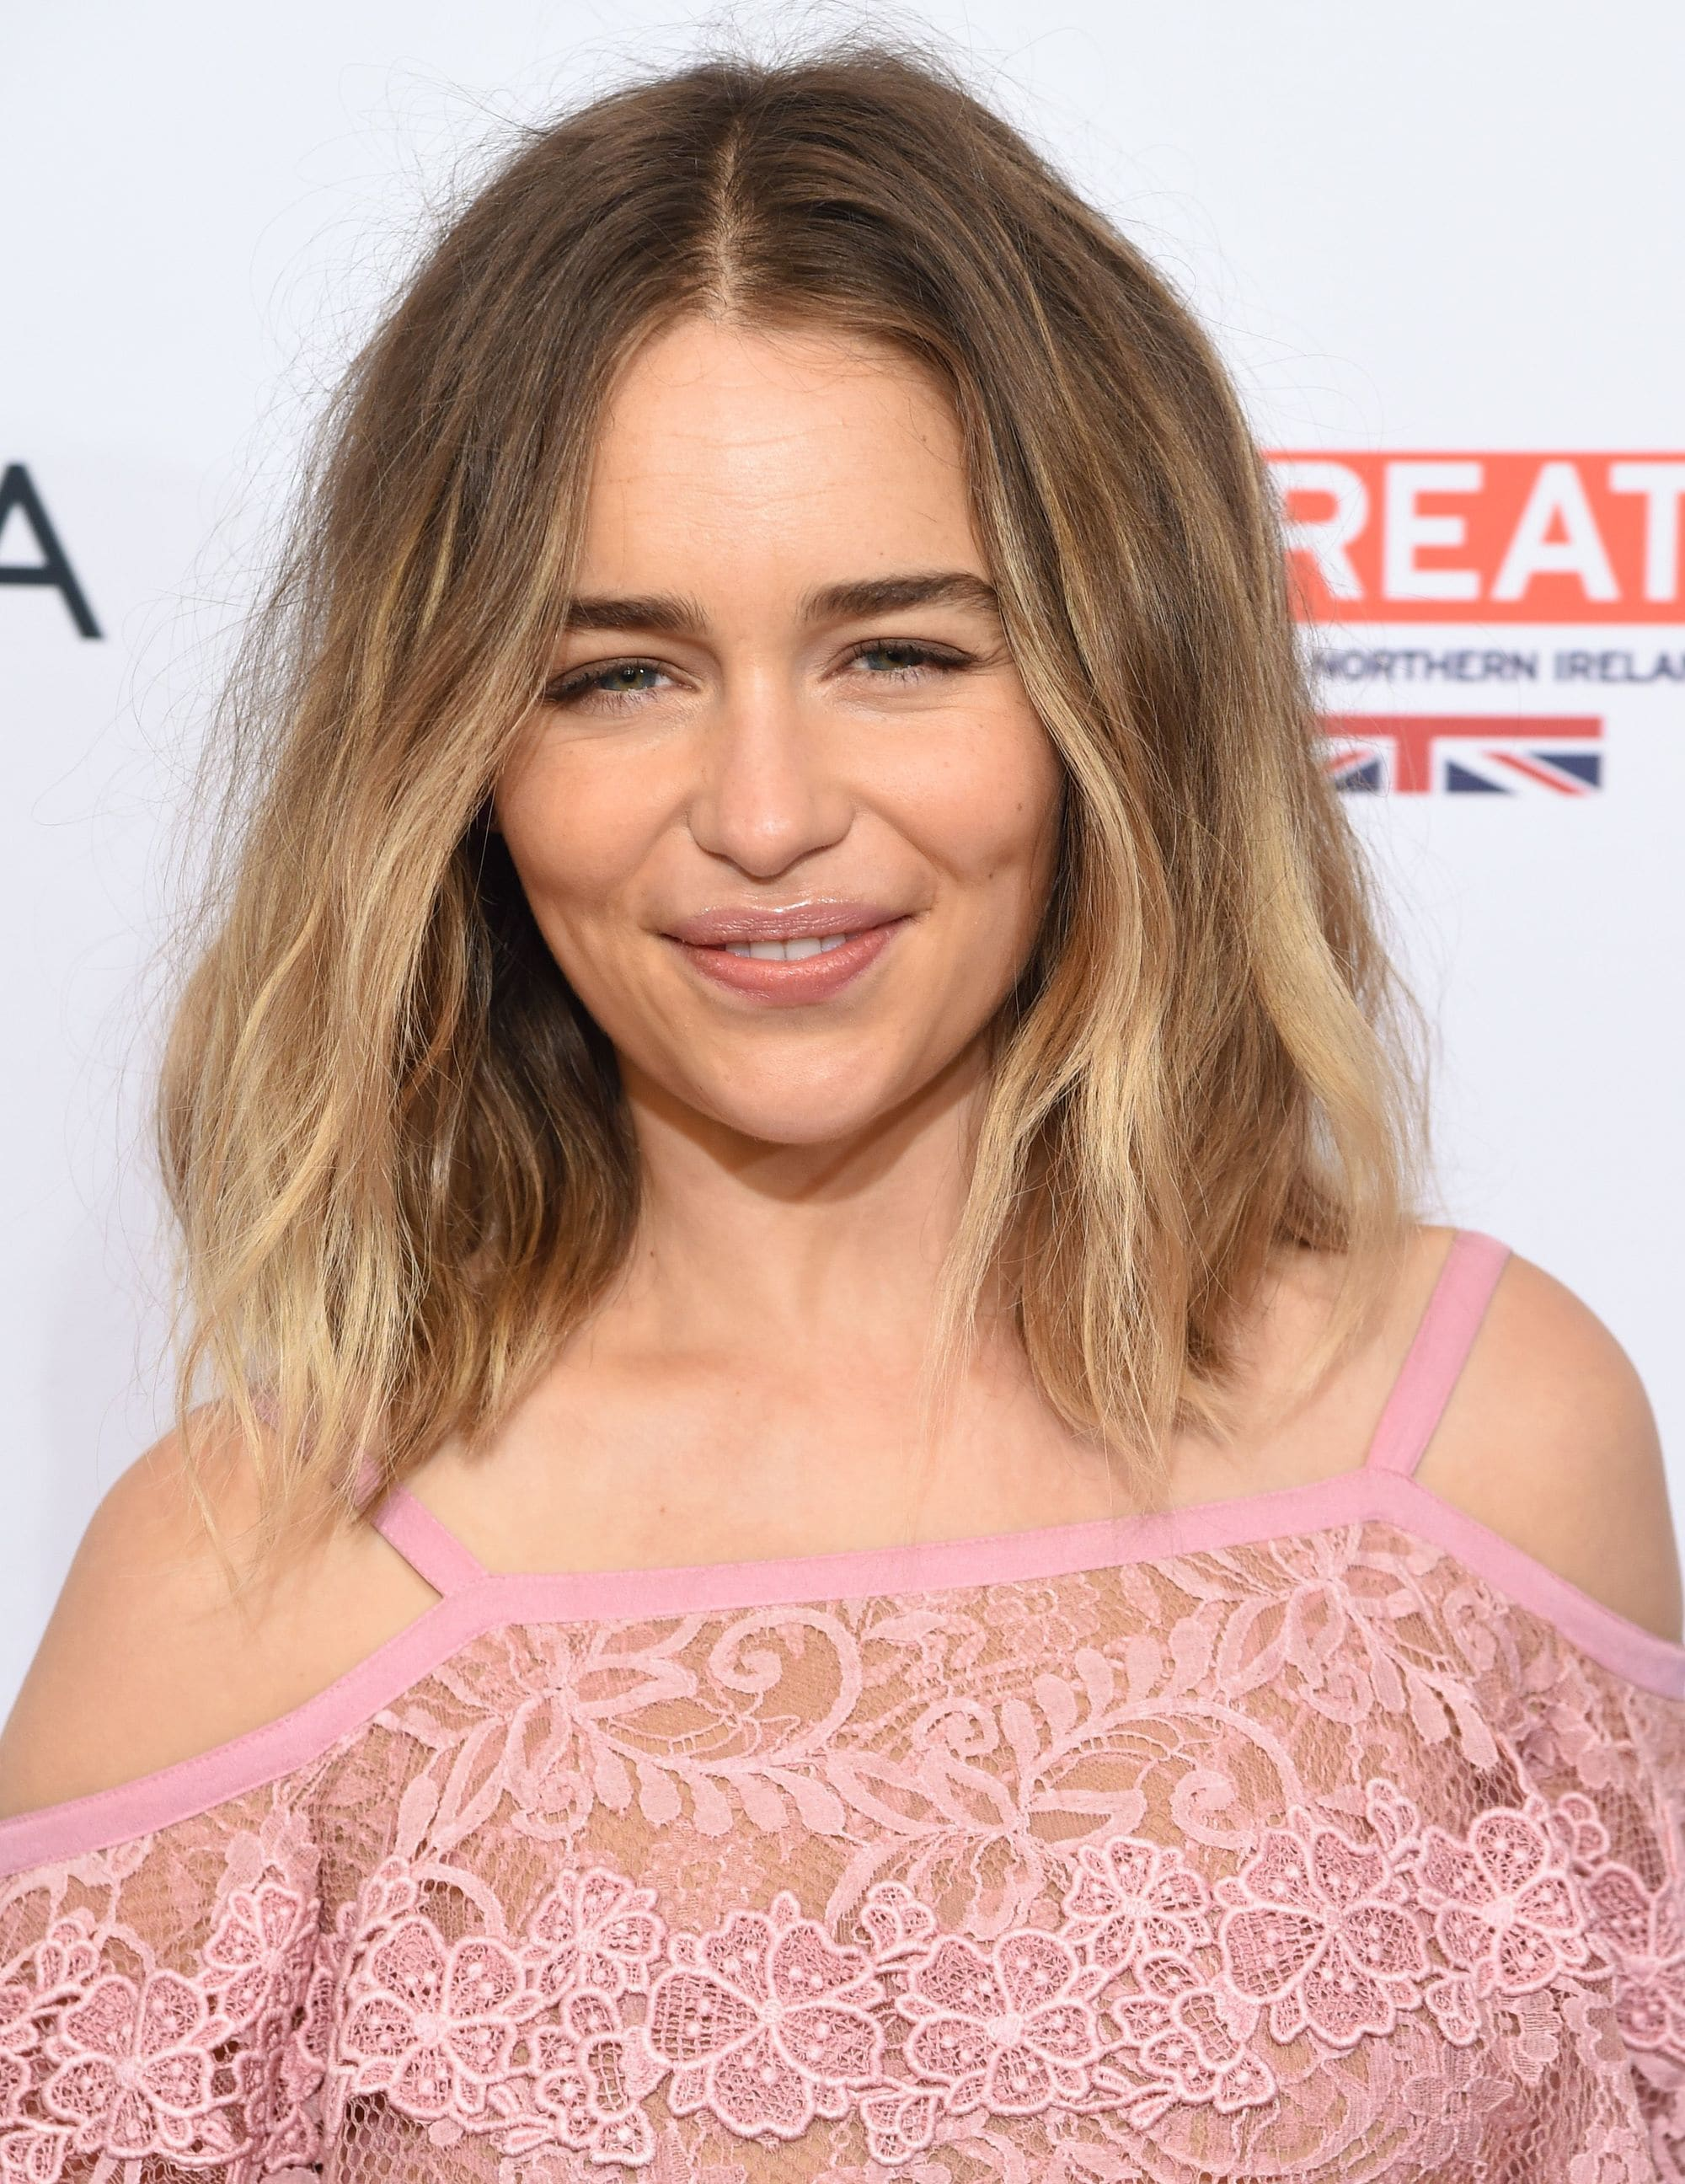 Blonde Ombre Hair 20 Tempting Celebrity Styles To Try